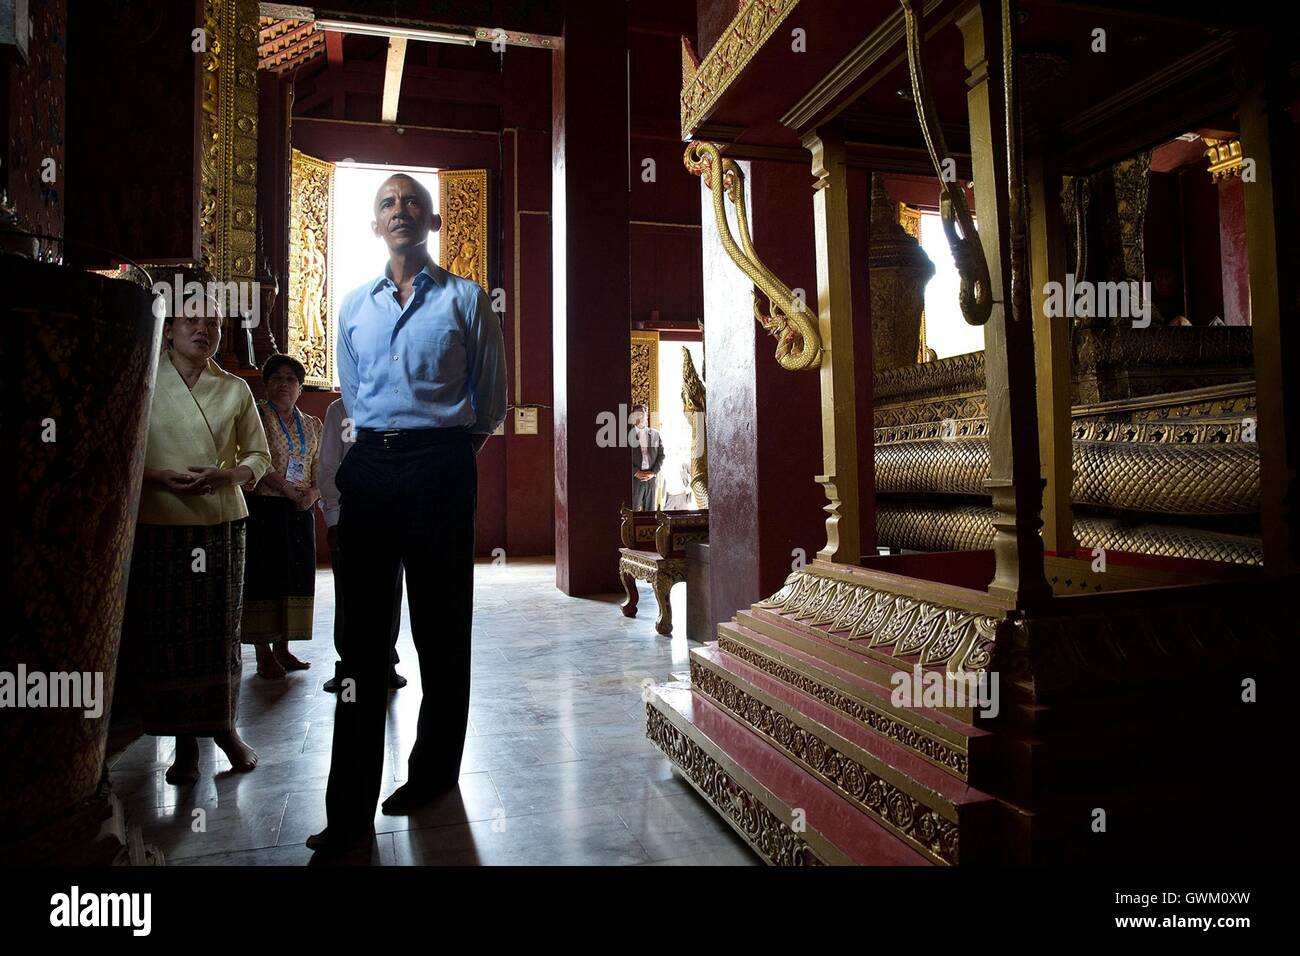 U.S President Barack Obama tours the Ho Raj Rod carriage house during his tour of the Wat Xieng Thong Buddhist temple - Stock Image